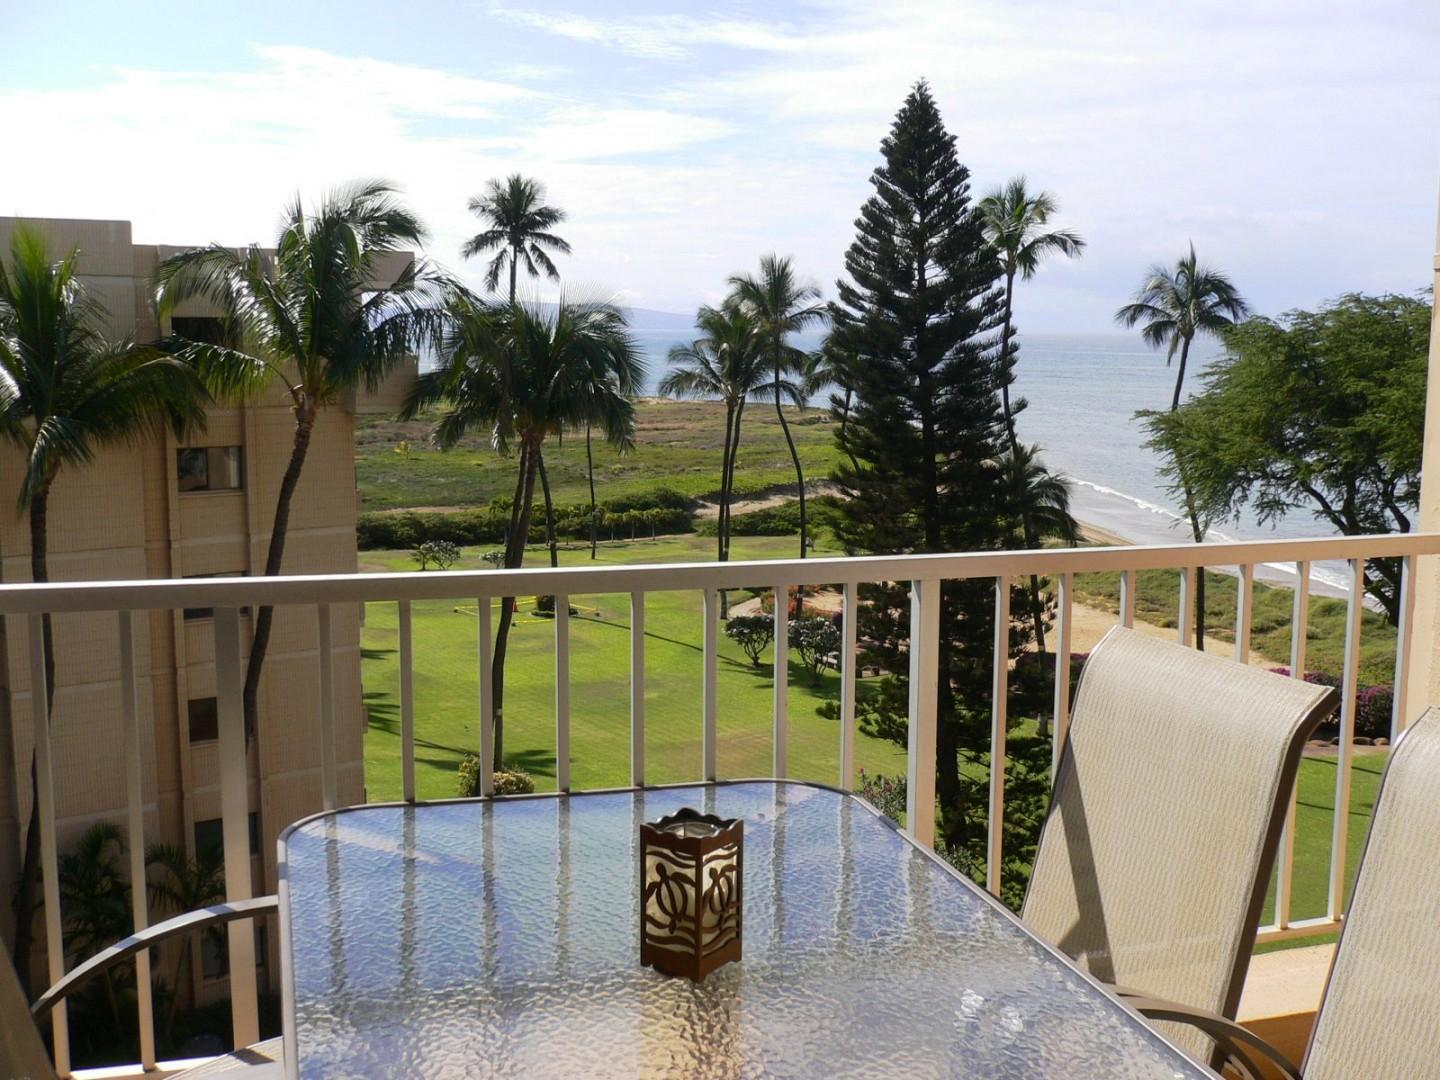 Outdoor dining on the private lanai.